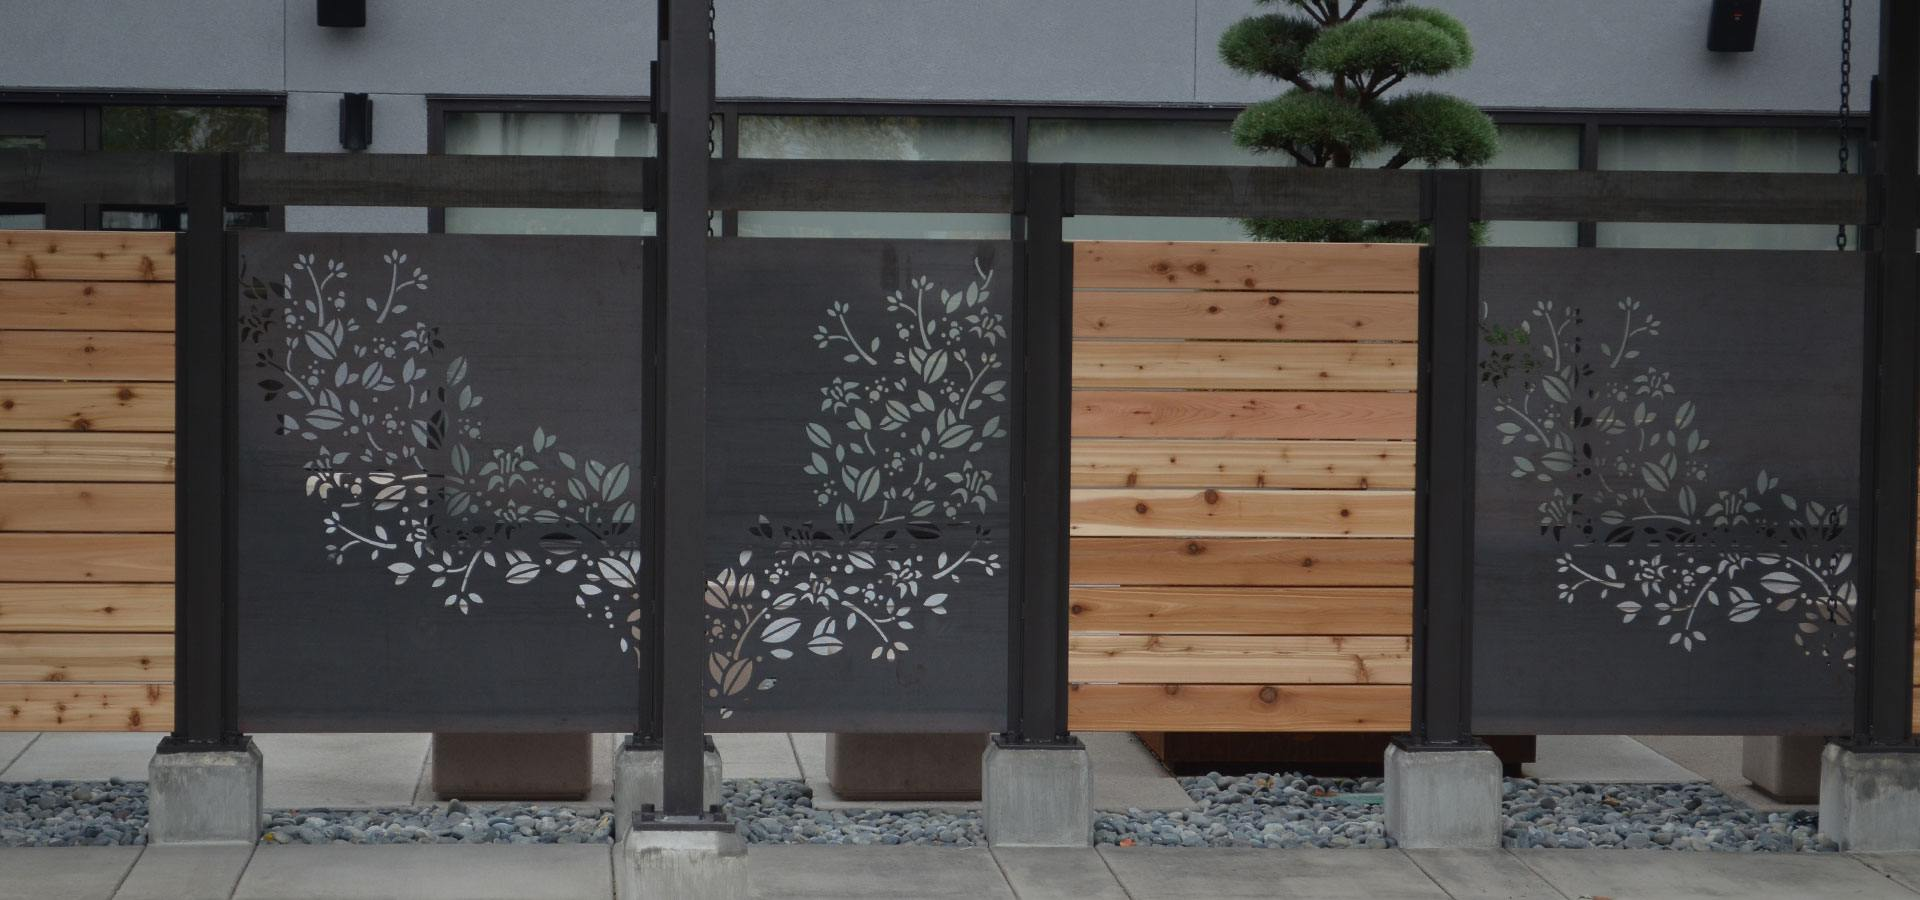 A decorative patio area fence